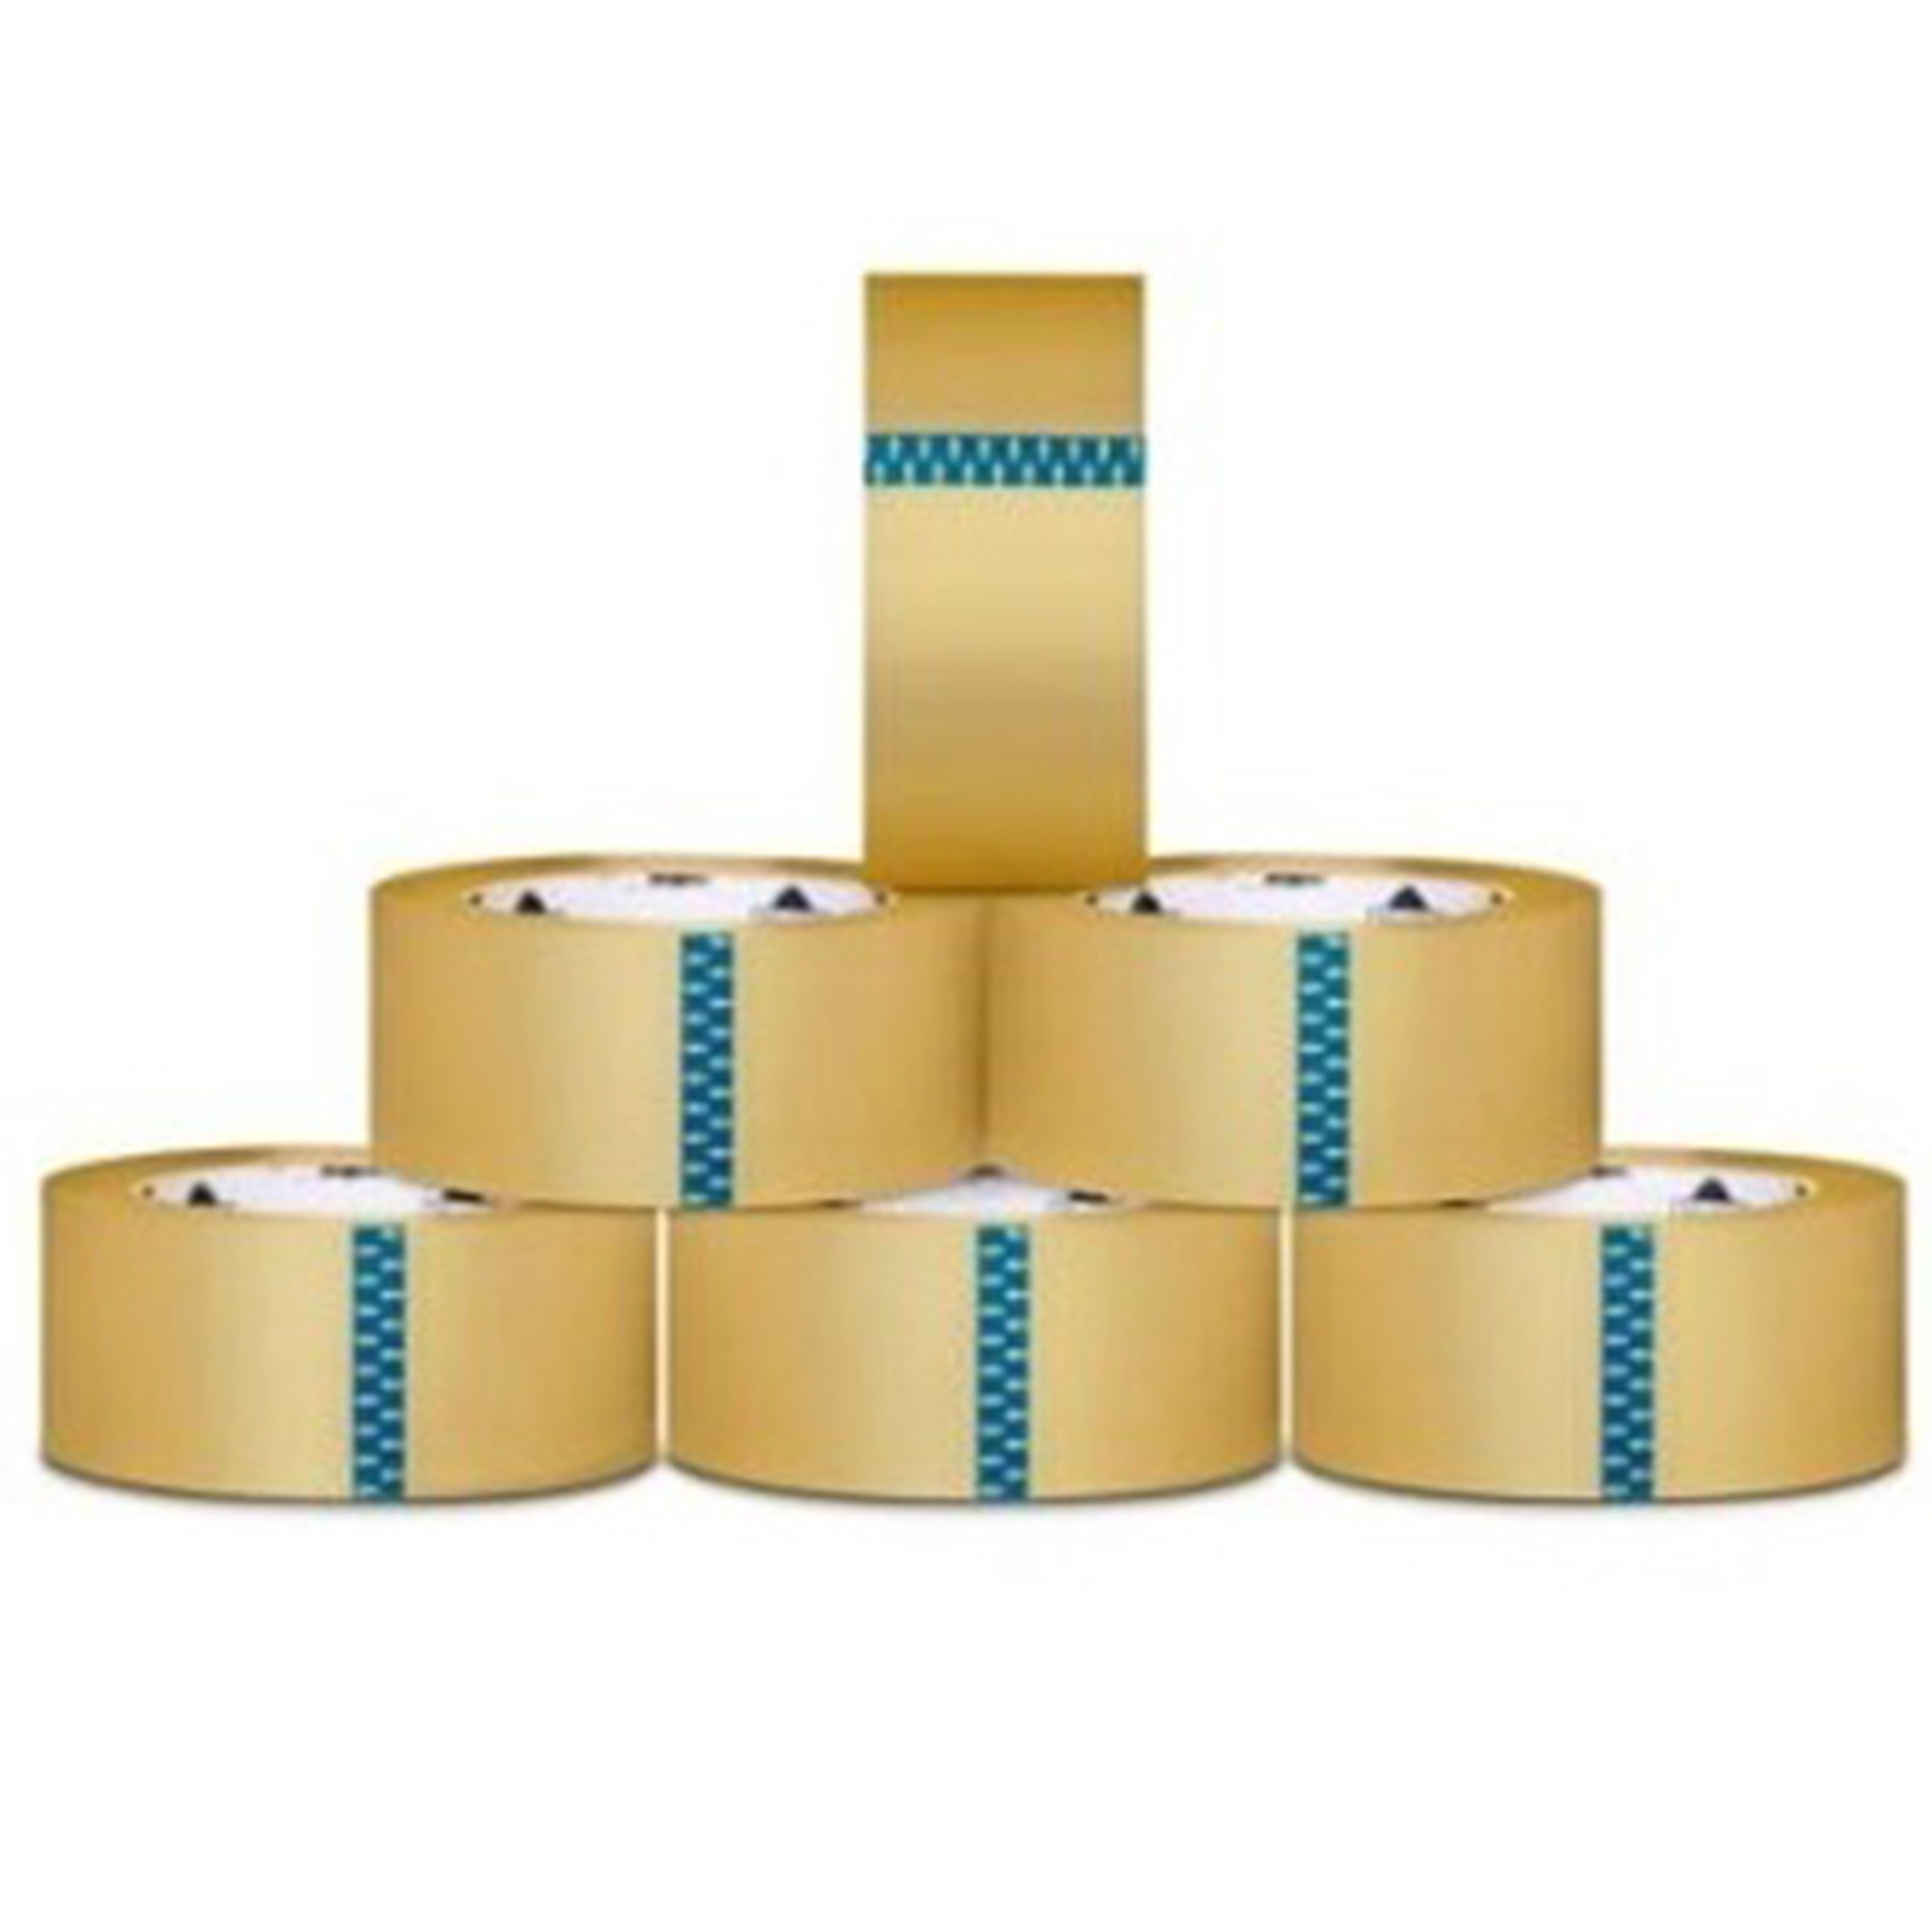 Packagingsuppliesbymail 12 ROLLS Carton Box Sealing Packing / Shipping / Box Tape 1.6 Mil 2 Inch x 110 yard